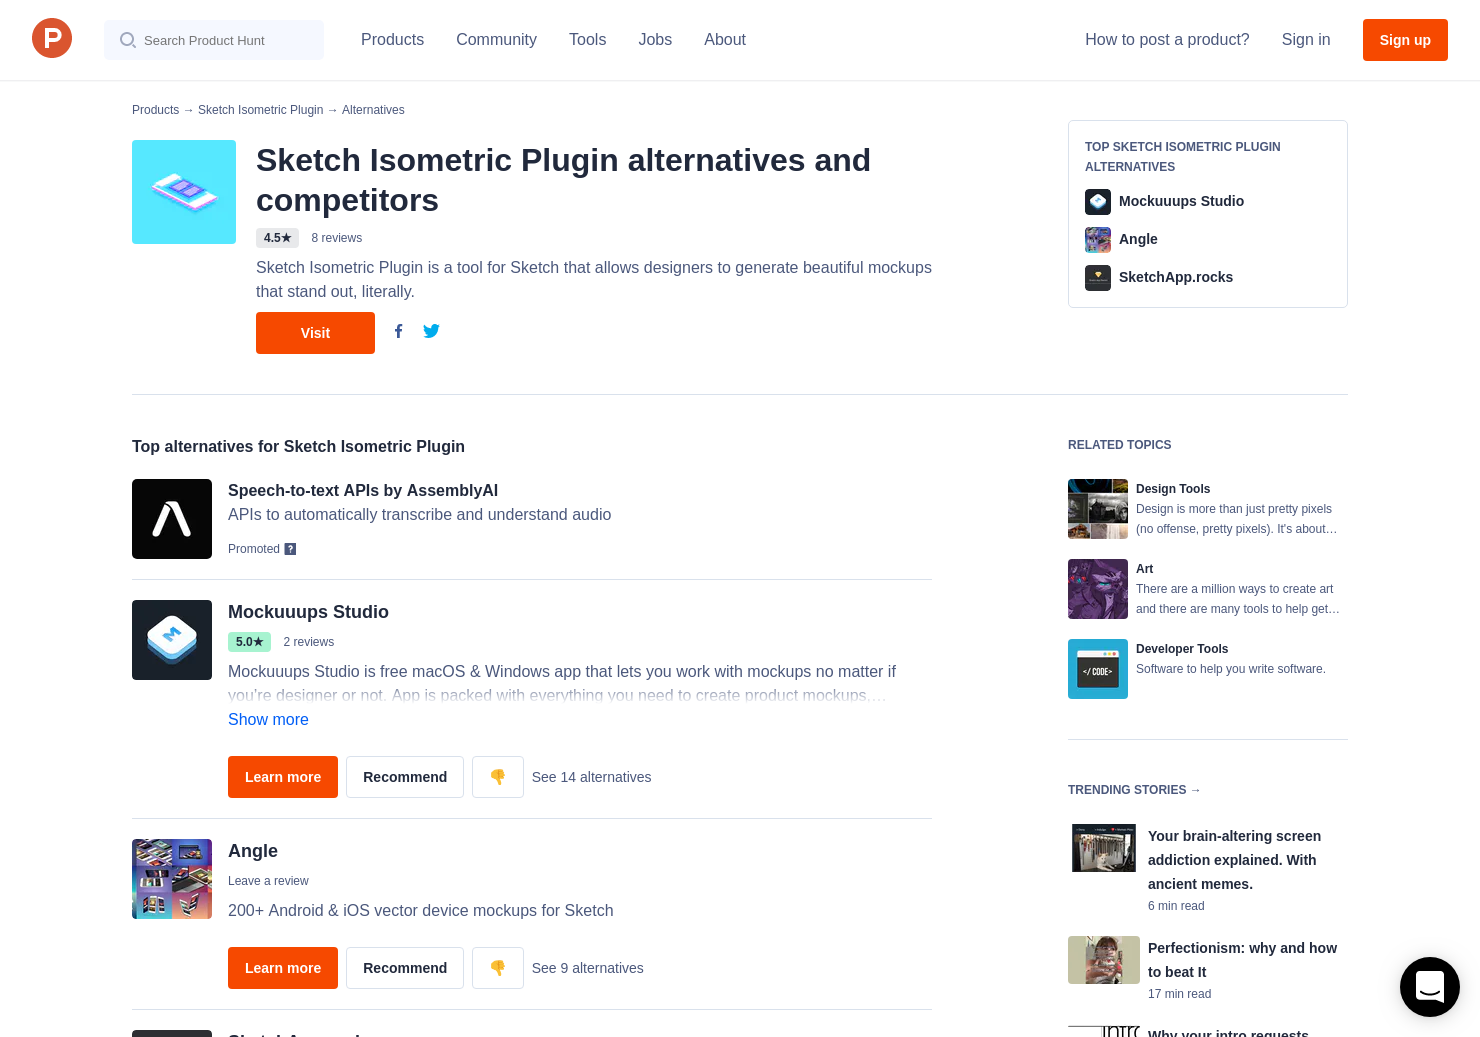 14 Alternatives to Sketch Isometric Plugin | Product Hunt